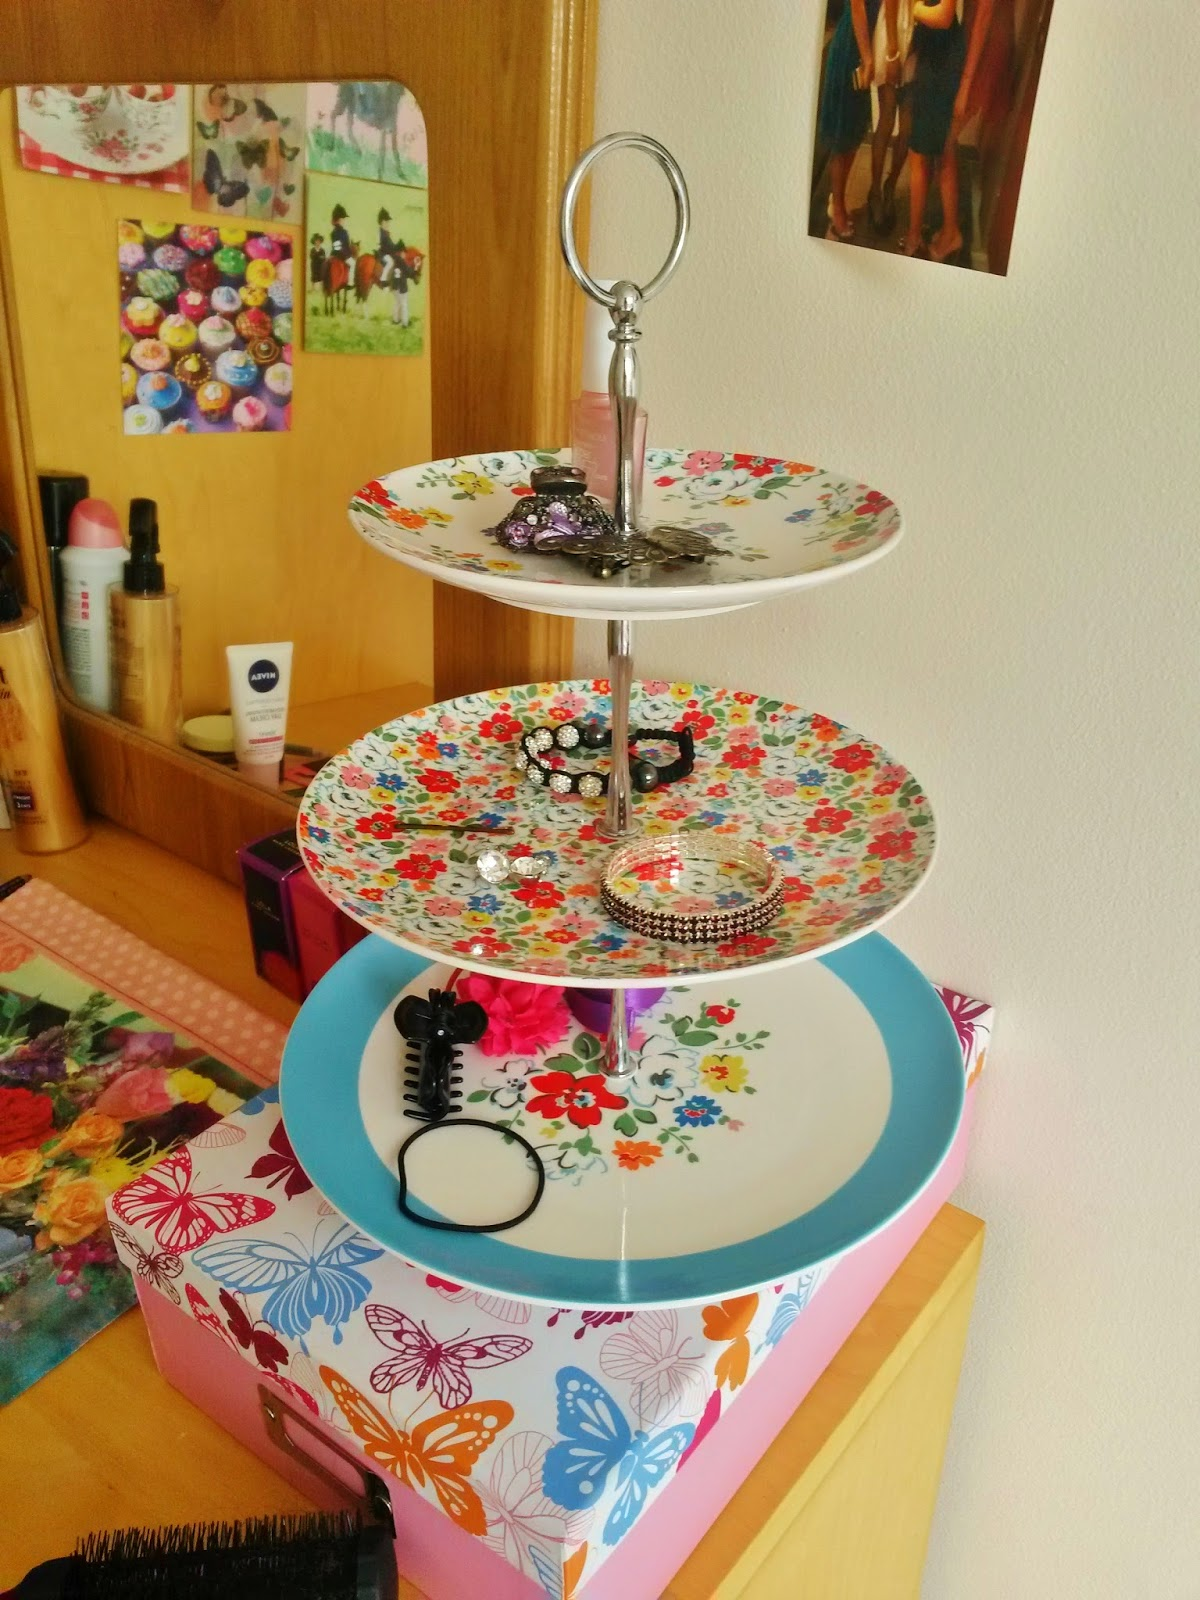 Cake stand as jewellery stand in university bedroom